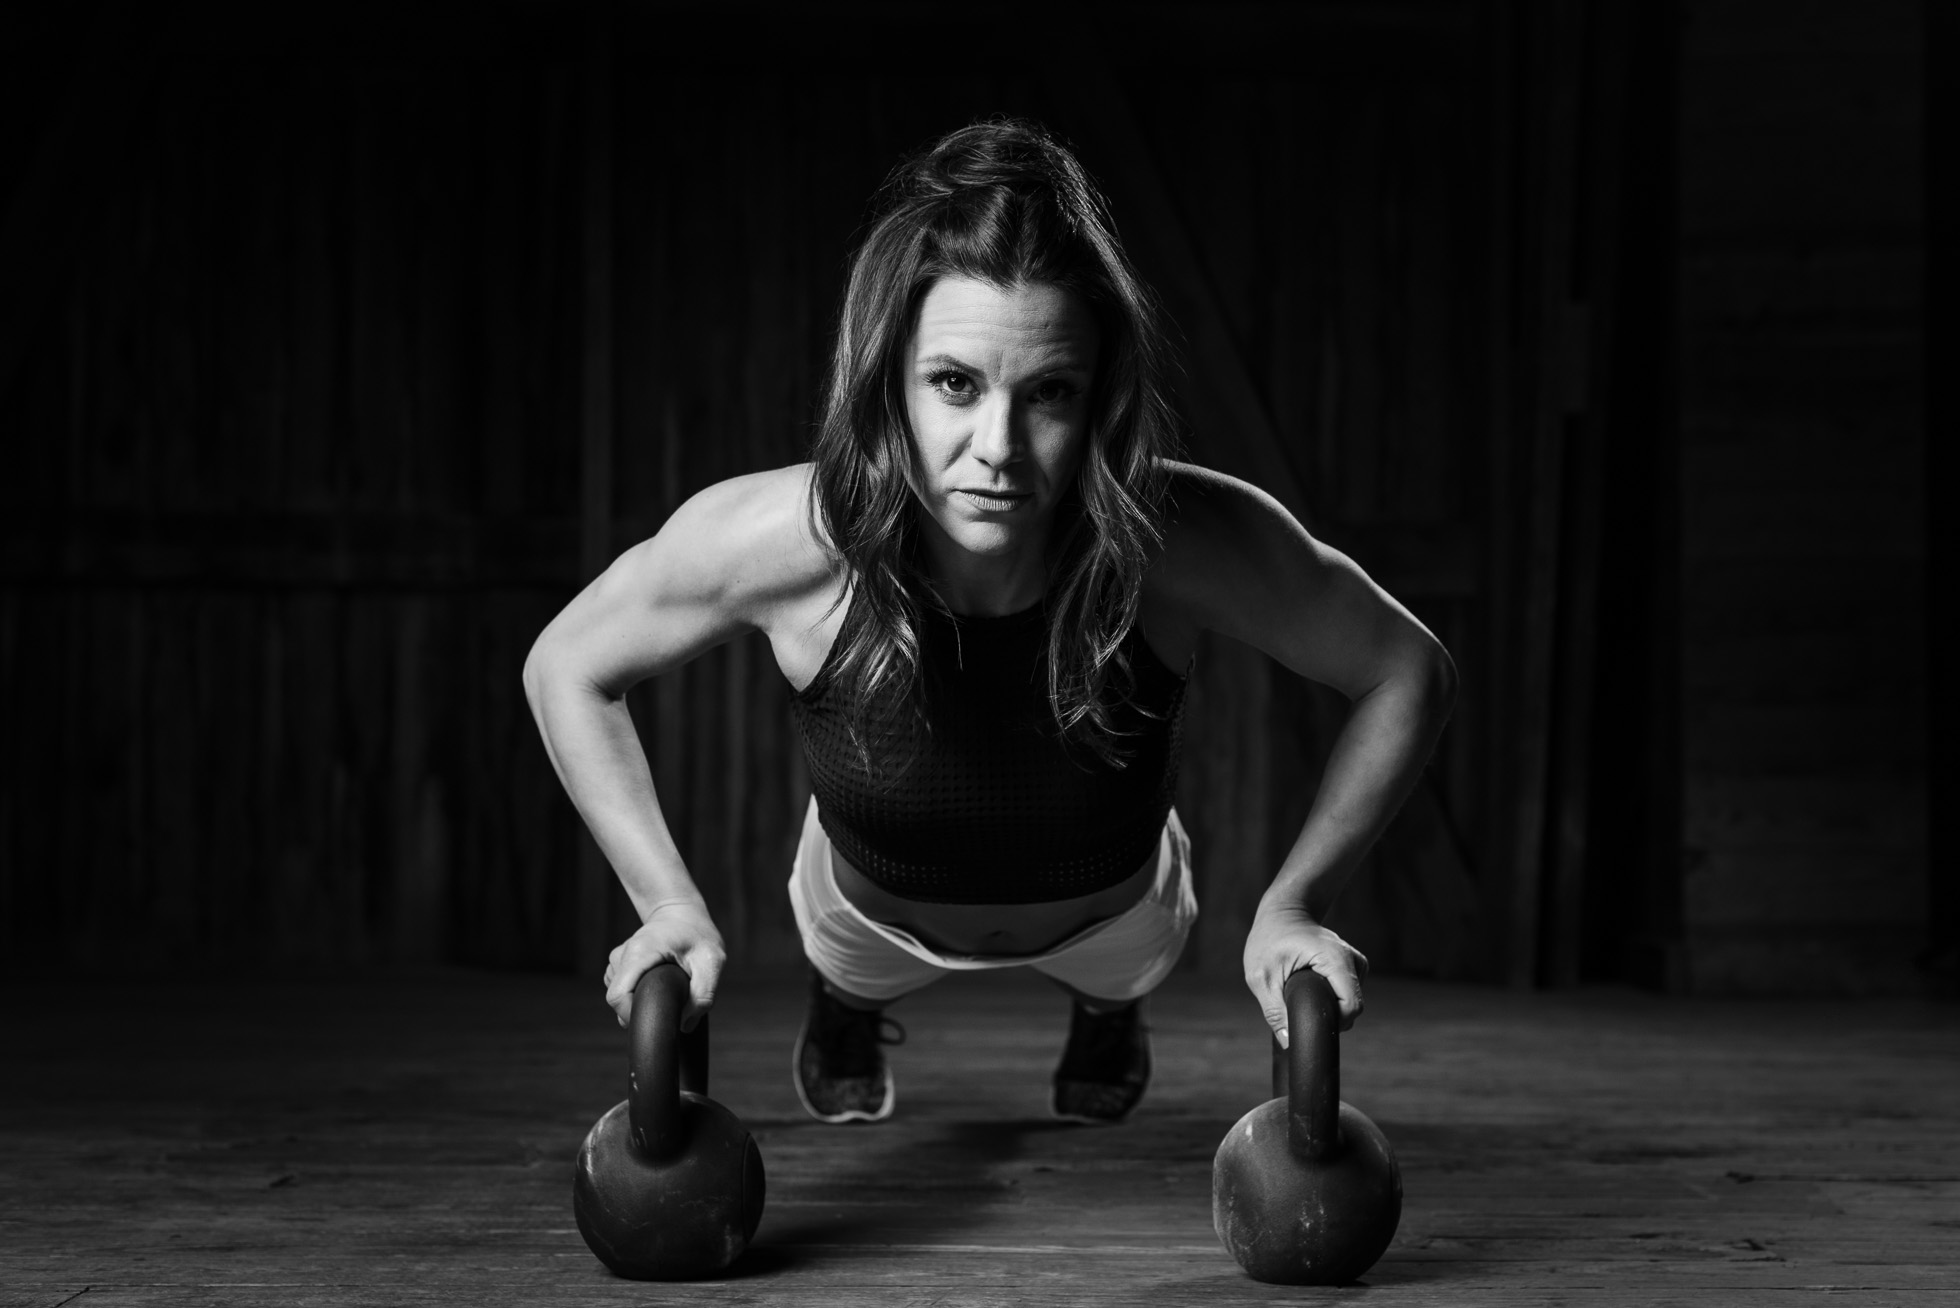 A fitness instructor and personal trainer does a pushup on a kettlebell while making eye contact with the viewer.